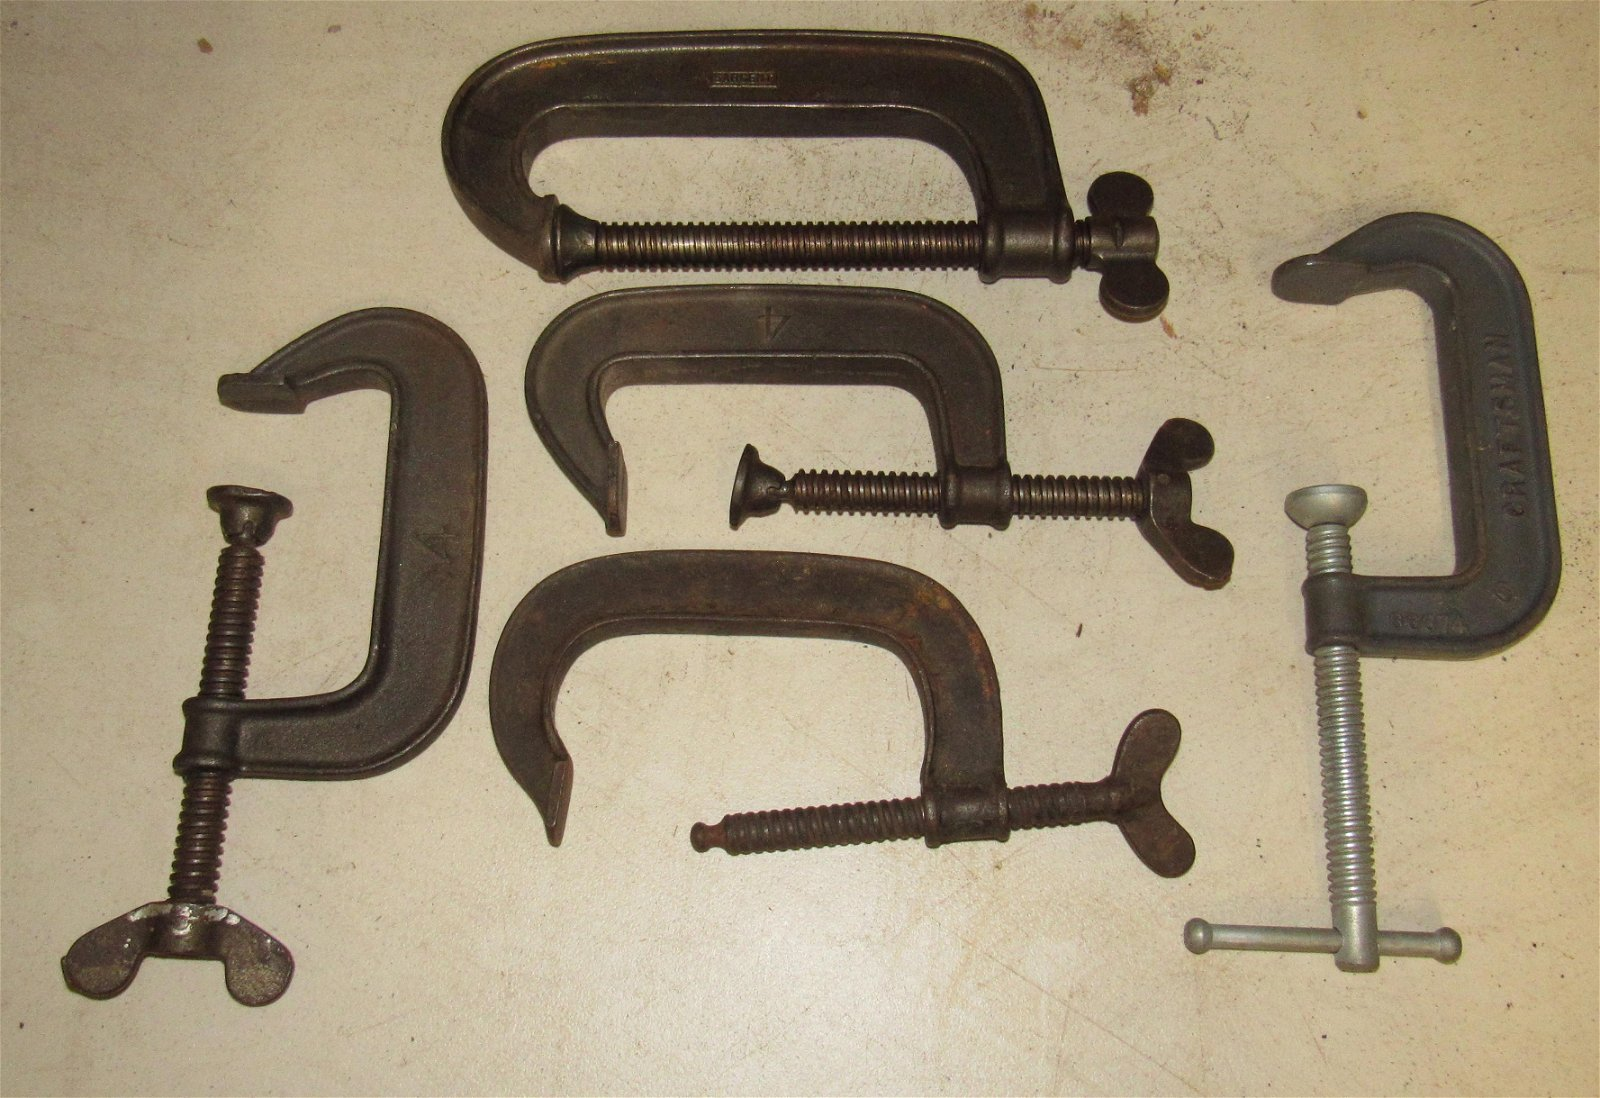 Stearns Craftsman and Sargeant Clamps